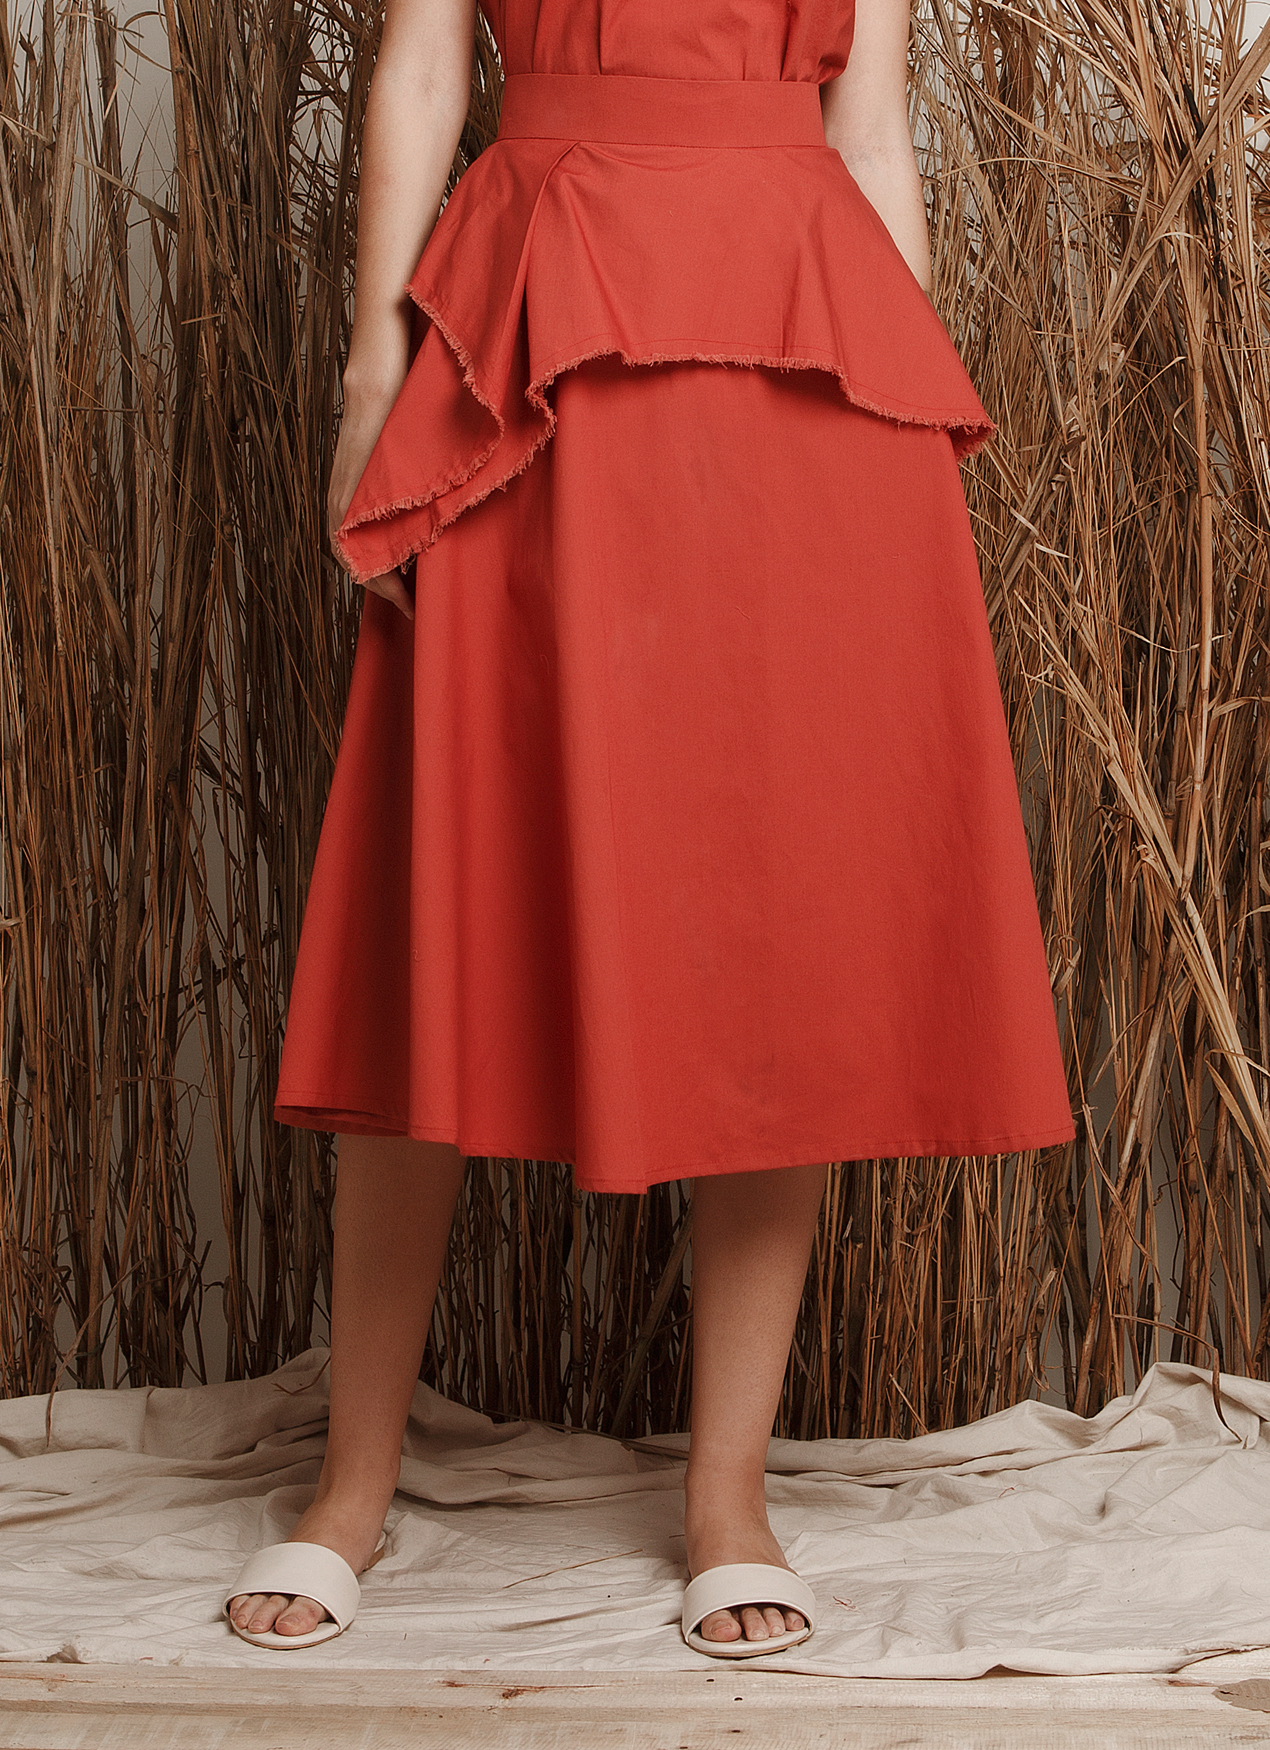 EUREKA Leonora Skirt - Orange